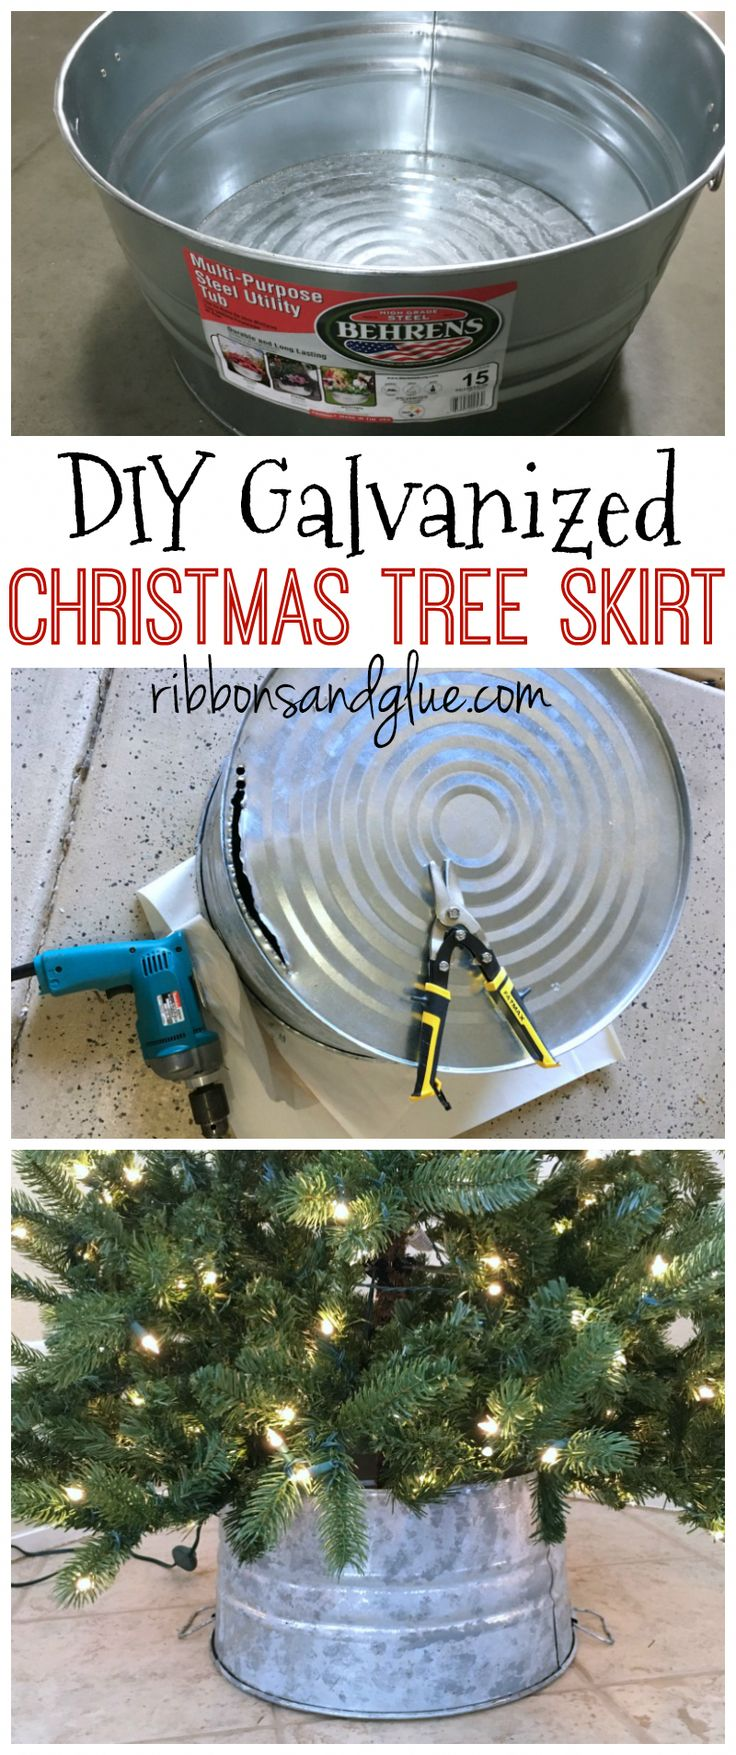 DIY Galvanized Bucket Christmas Tree Skirt made out of a